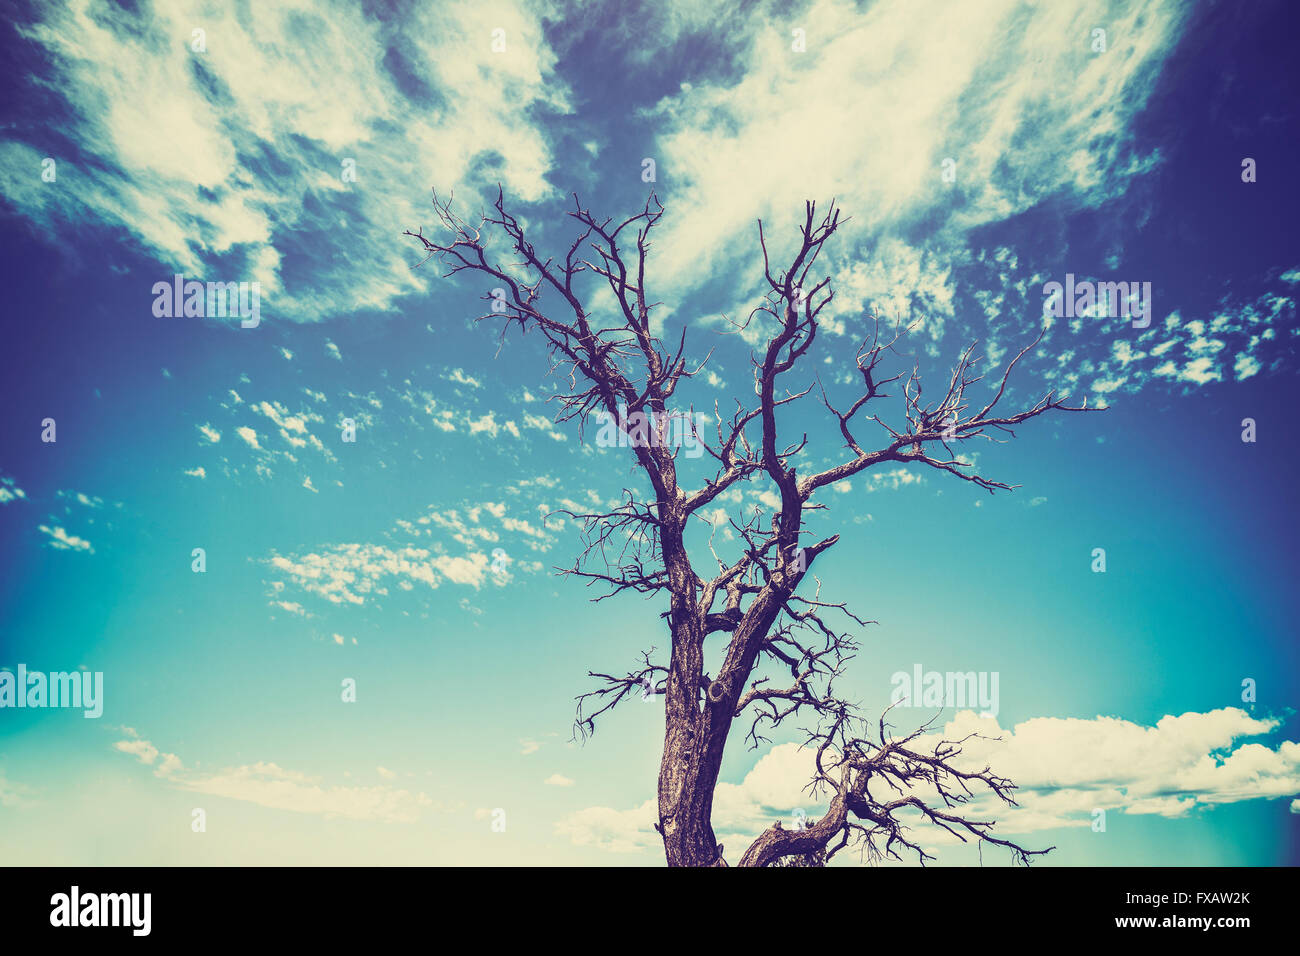 Vintage old film style withered tree with heavy vignette effect. - Stock Image